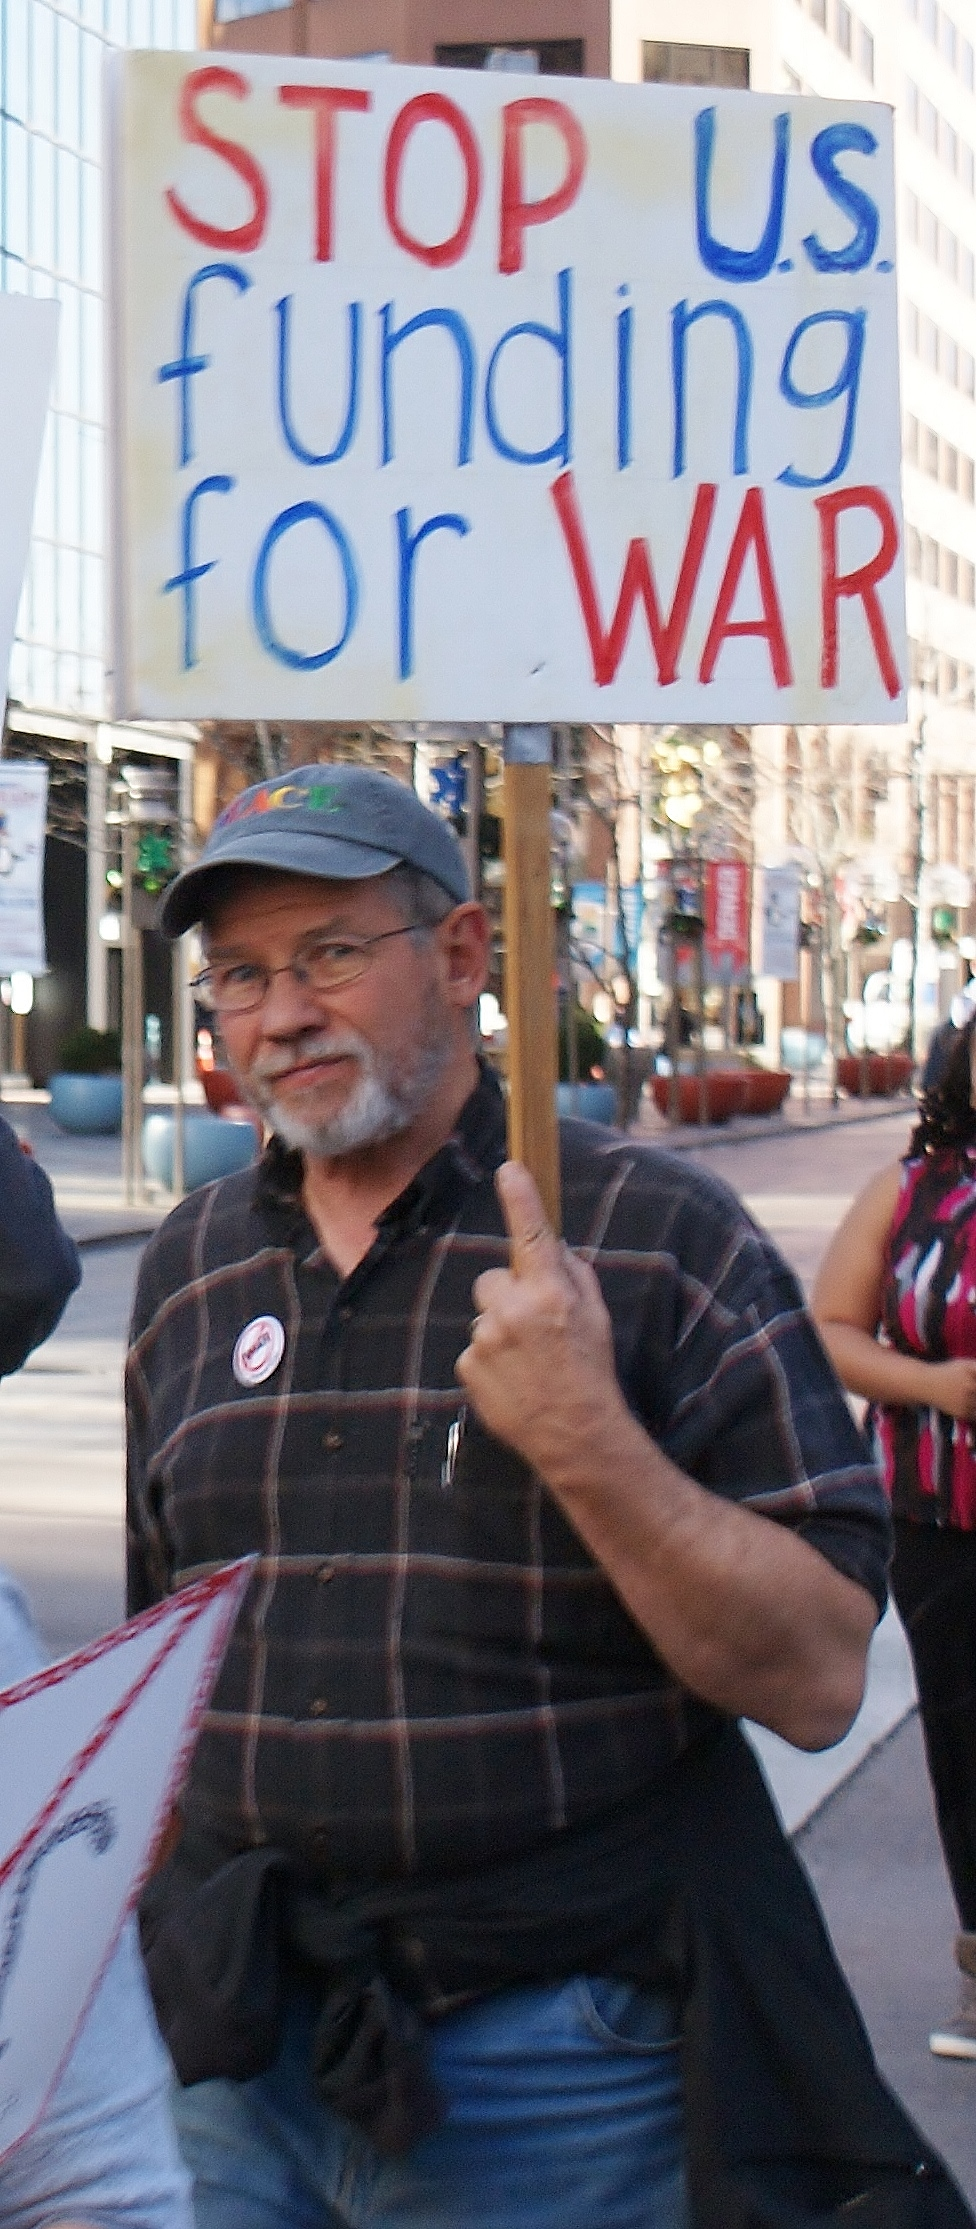 Man marching with sign about US war funding.